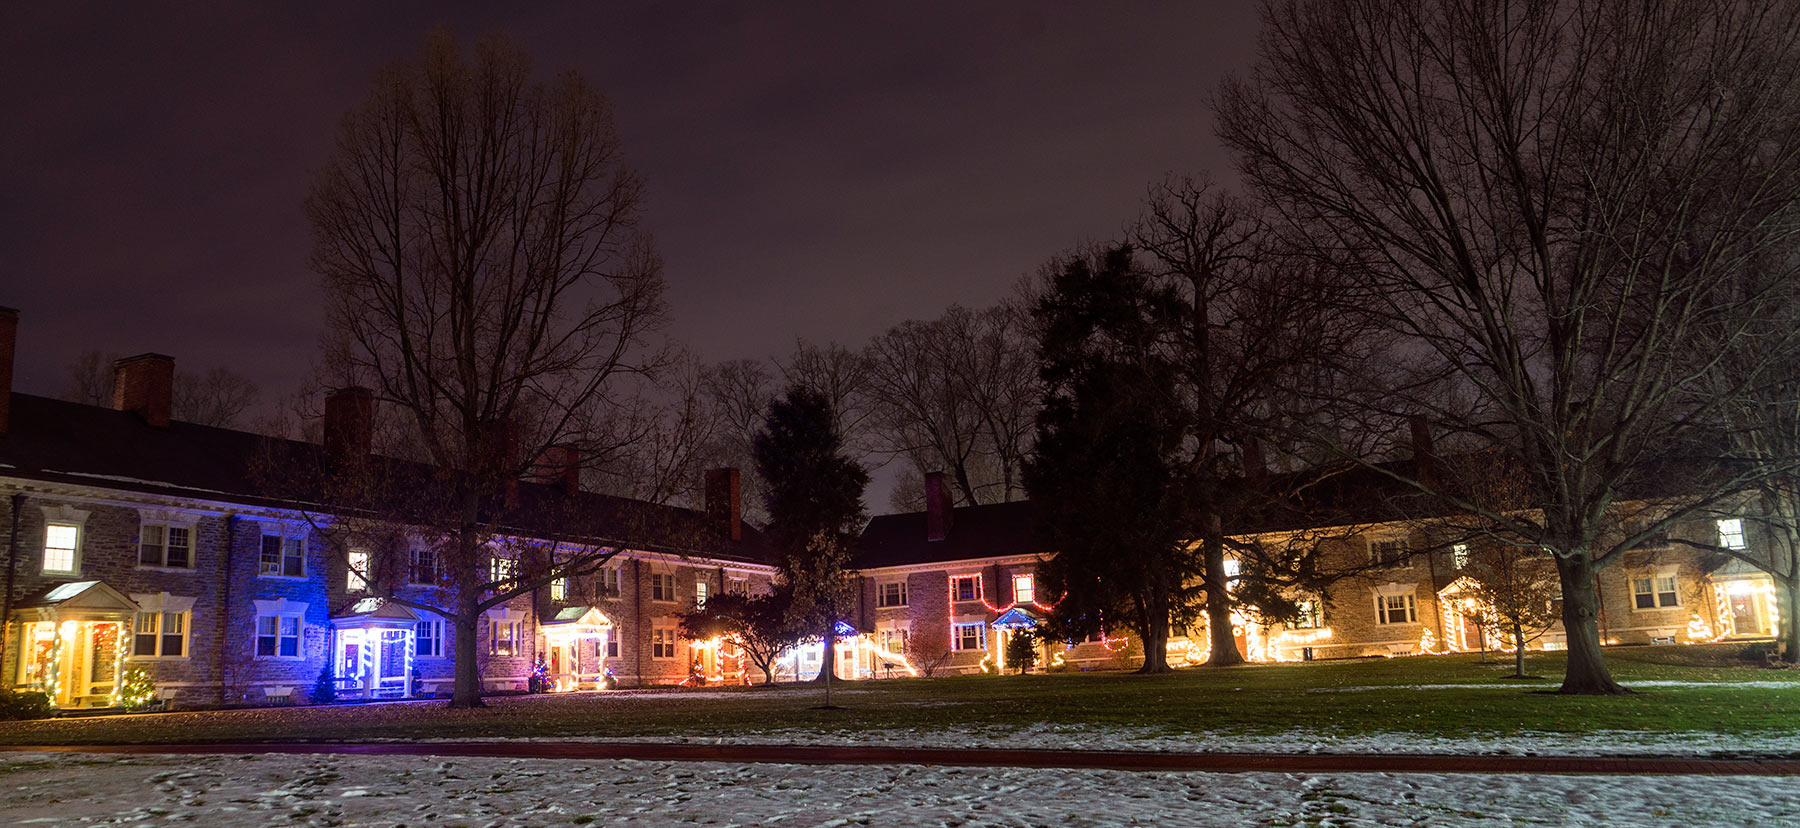 Lloyd dorms decorated for the holiday season